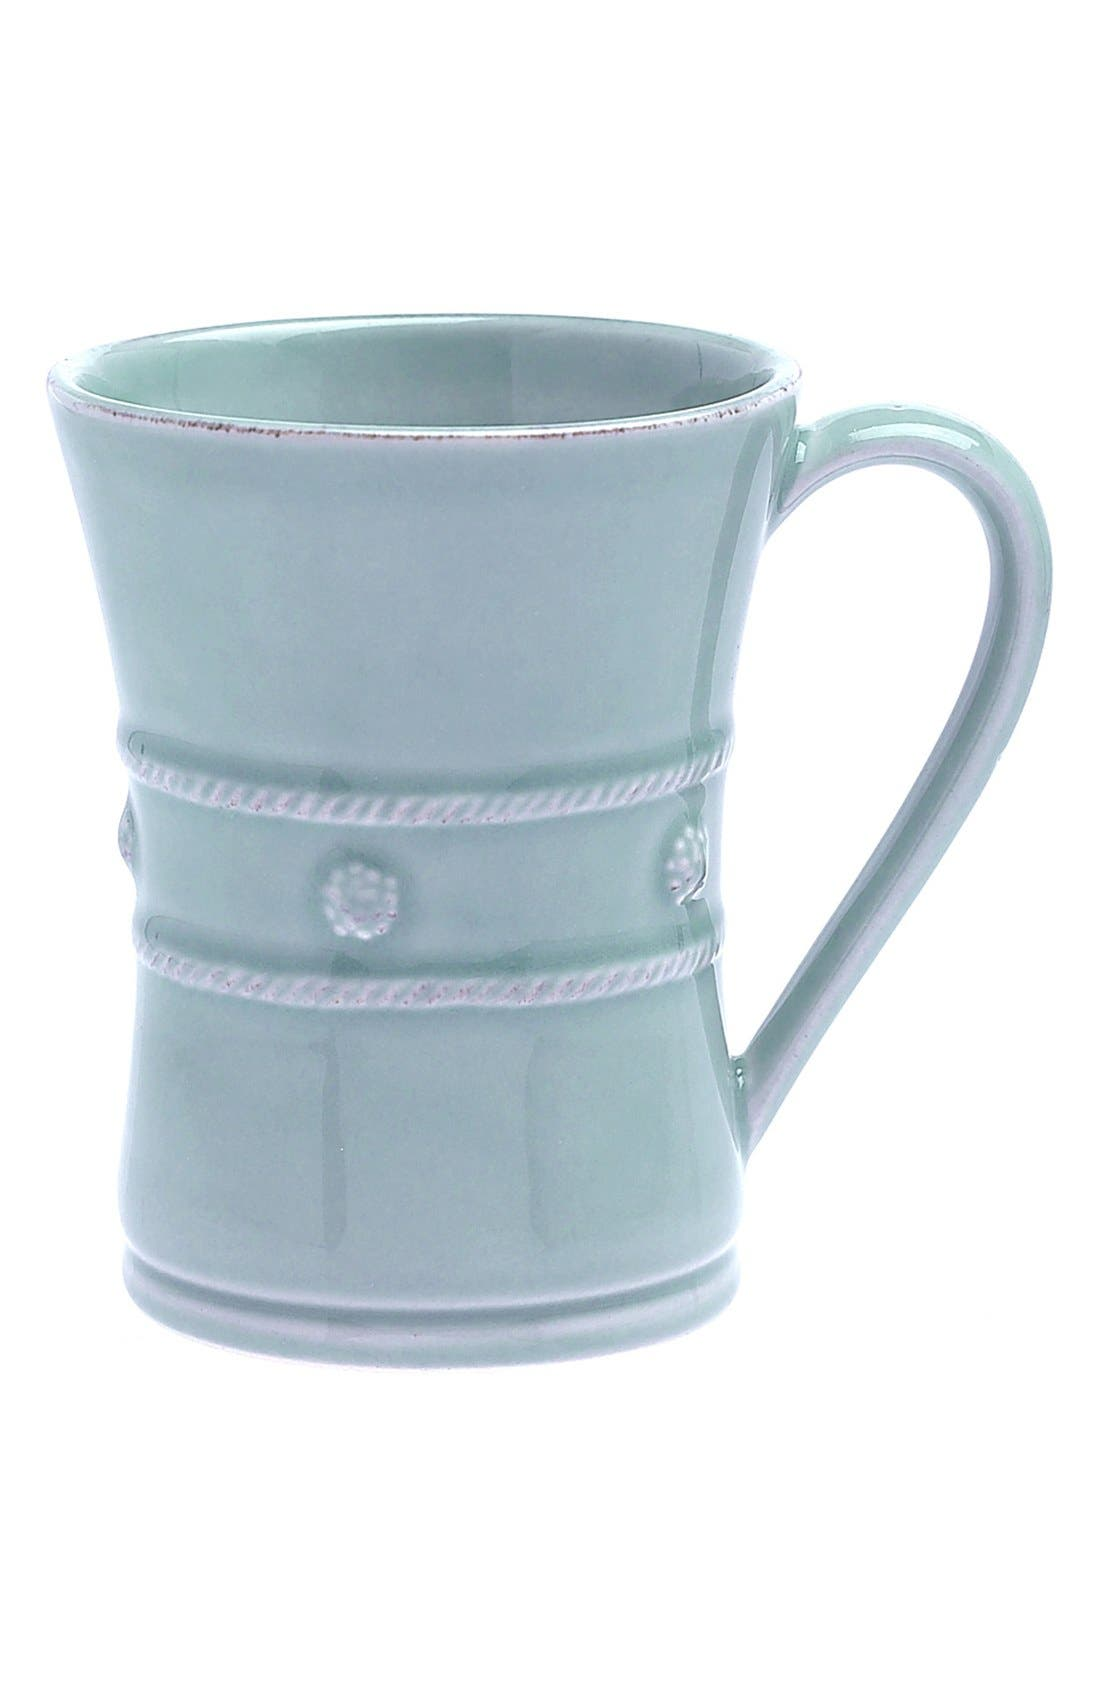 JULISKA 'Berry and Thread' Ceramic Coffee Mug